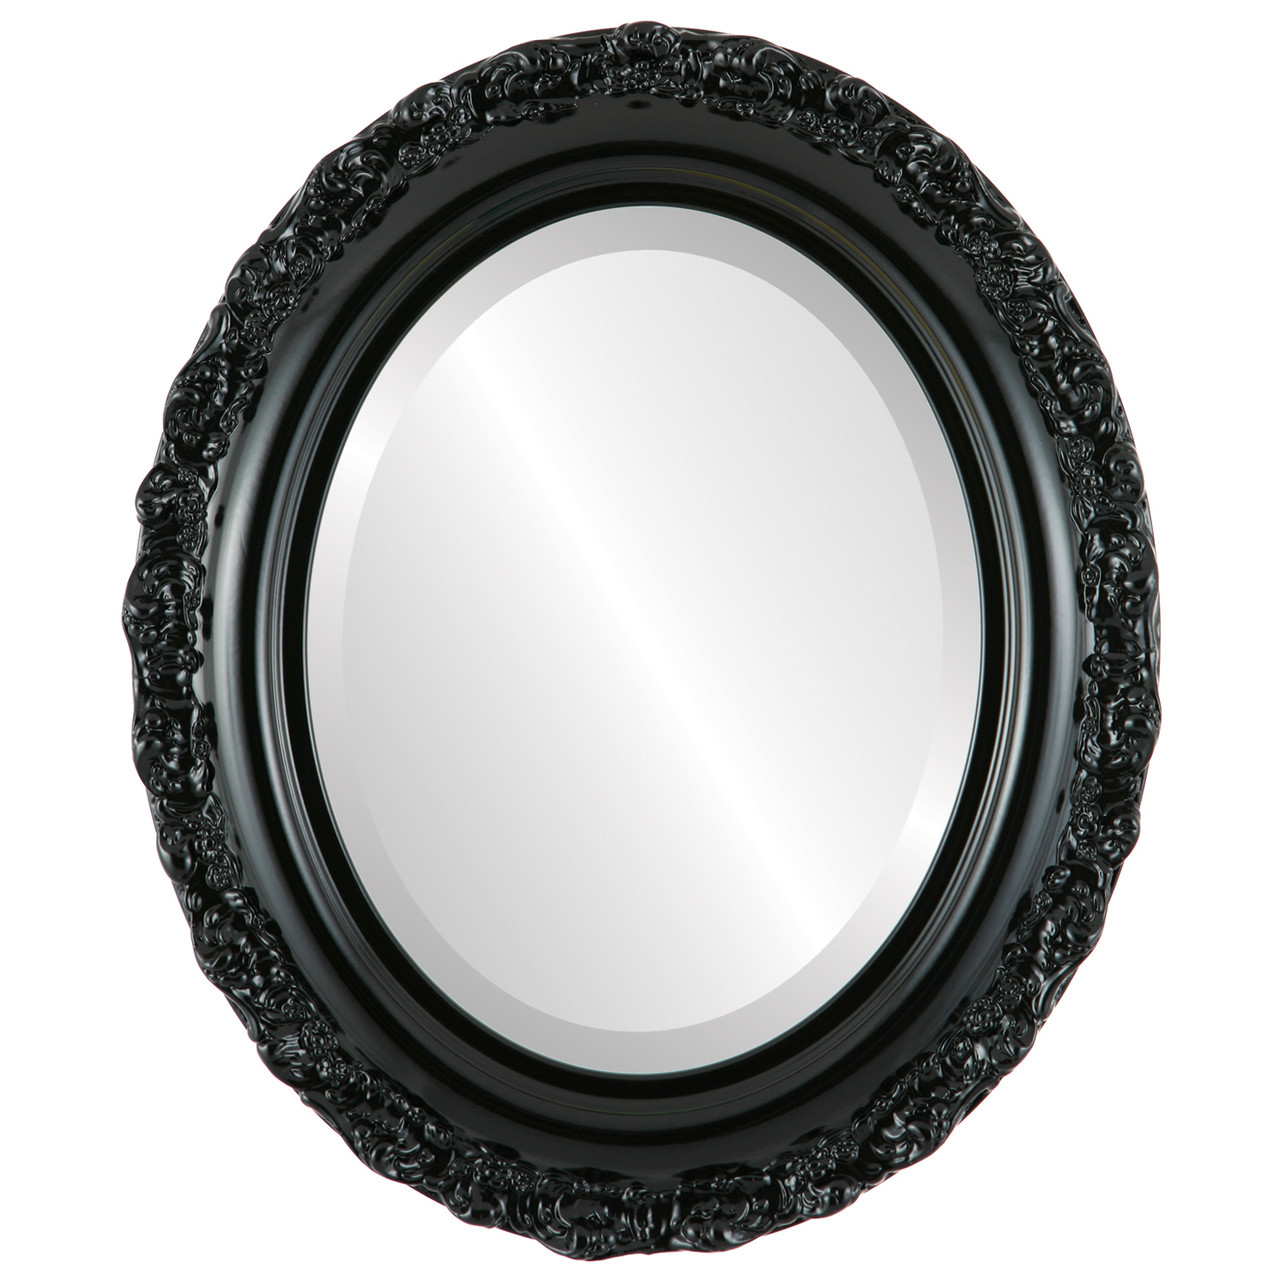 Decorative Black Oval Mirrors from $146 | Free Shipping